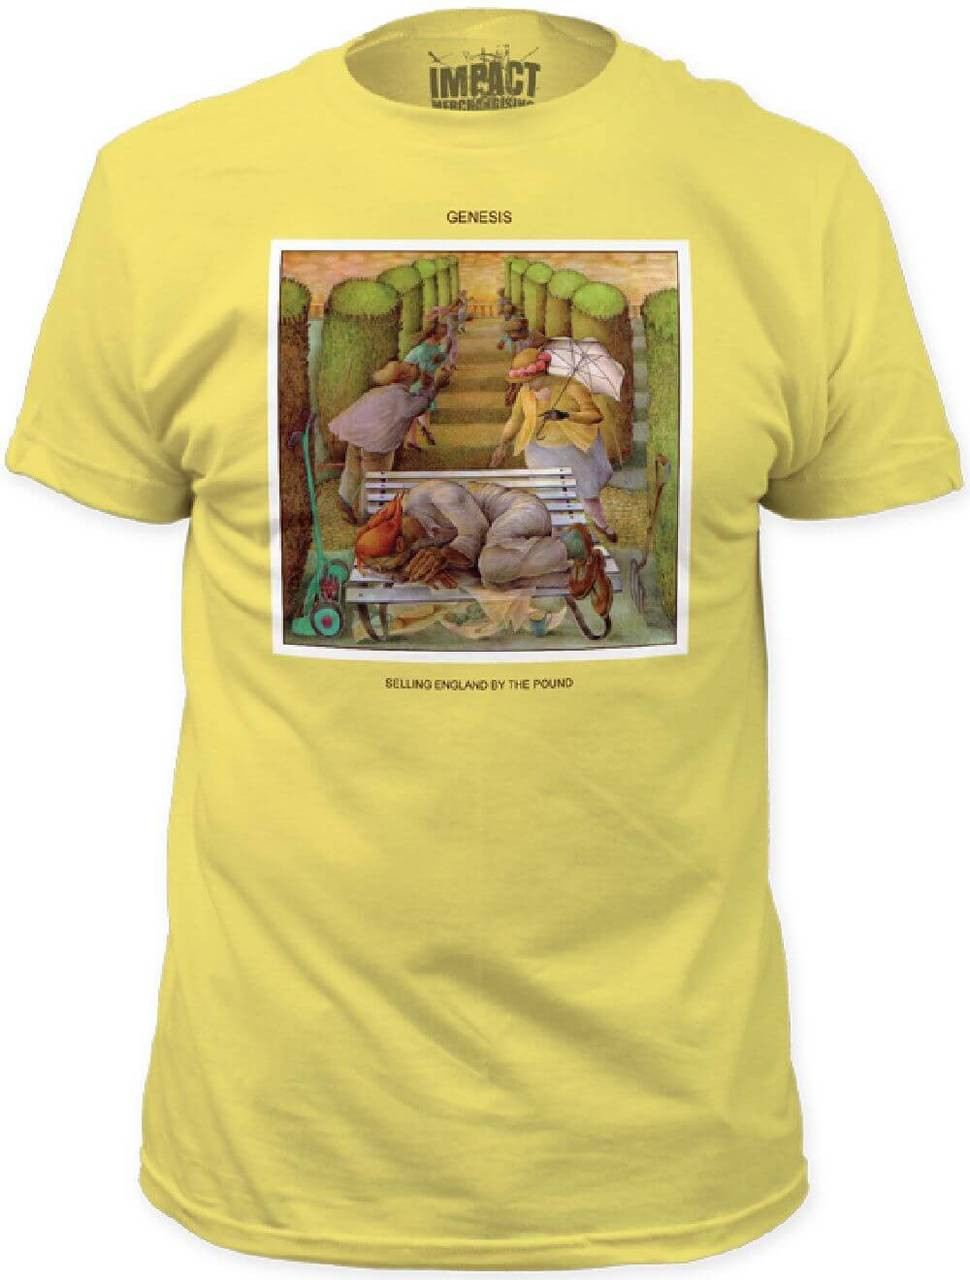 Classic Book Cover Tee Shirts : Genesis selling england by the pound album cover t shirt